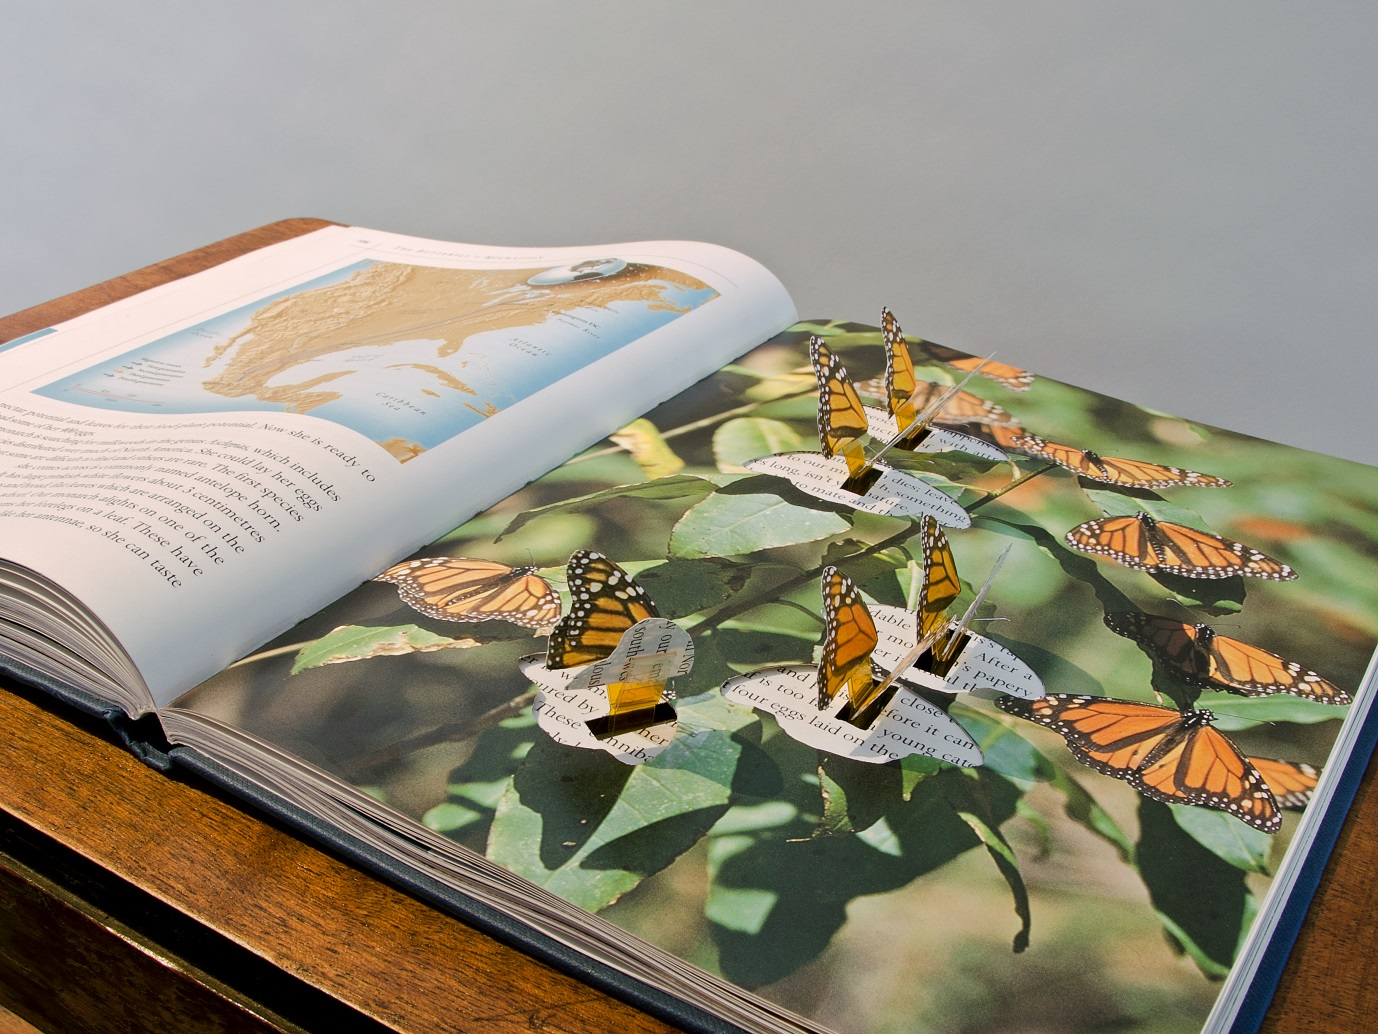 Picture Credit: Butterfly Book (2007). Andrea Roe in collaboration with Richard Brown. Photographed by Michael Wolchover.